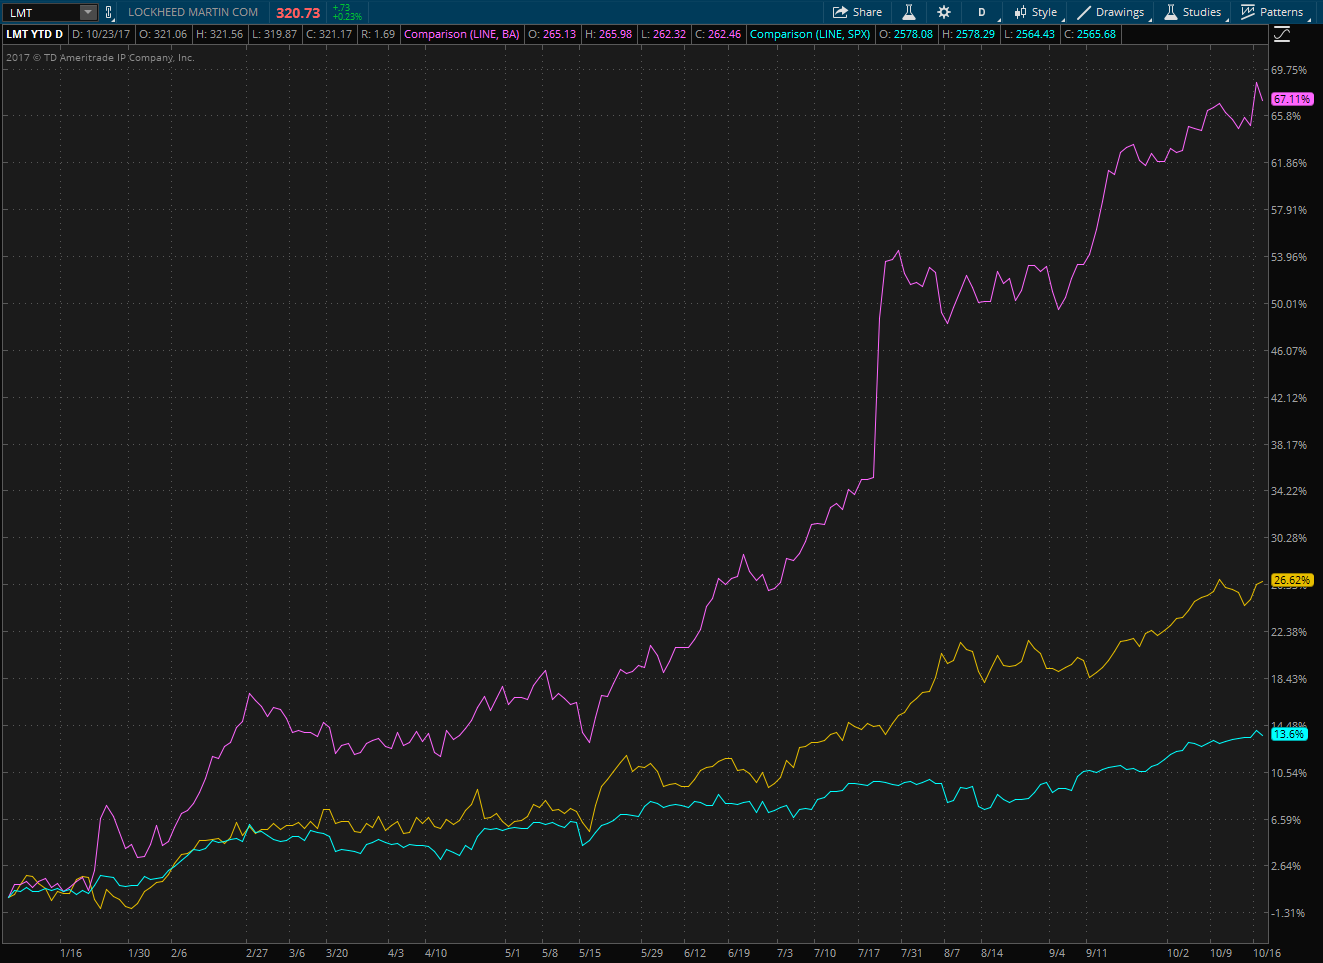 Lockheed Martin and Boeing YTD Performance